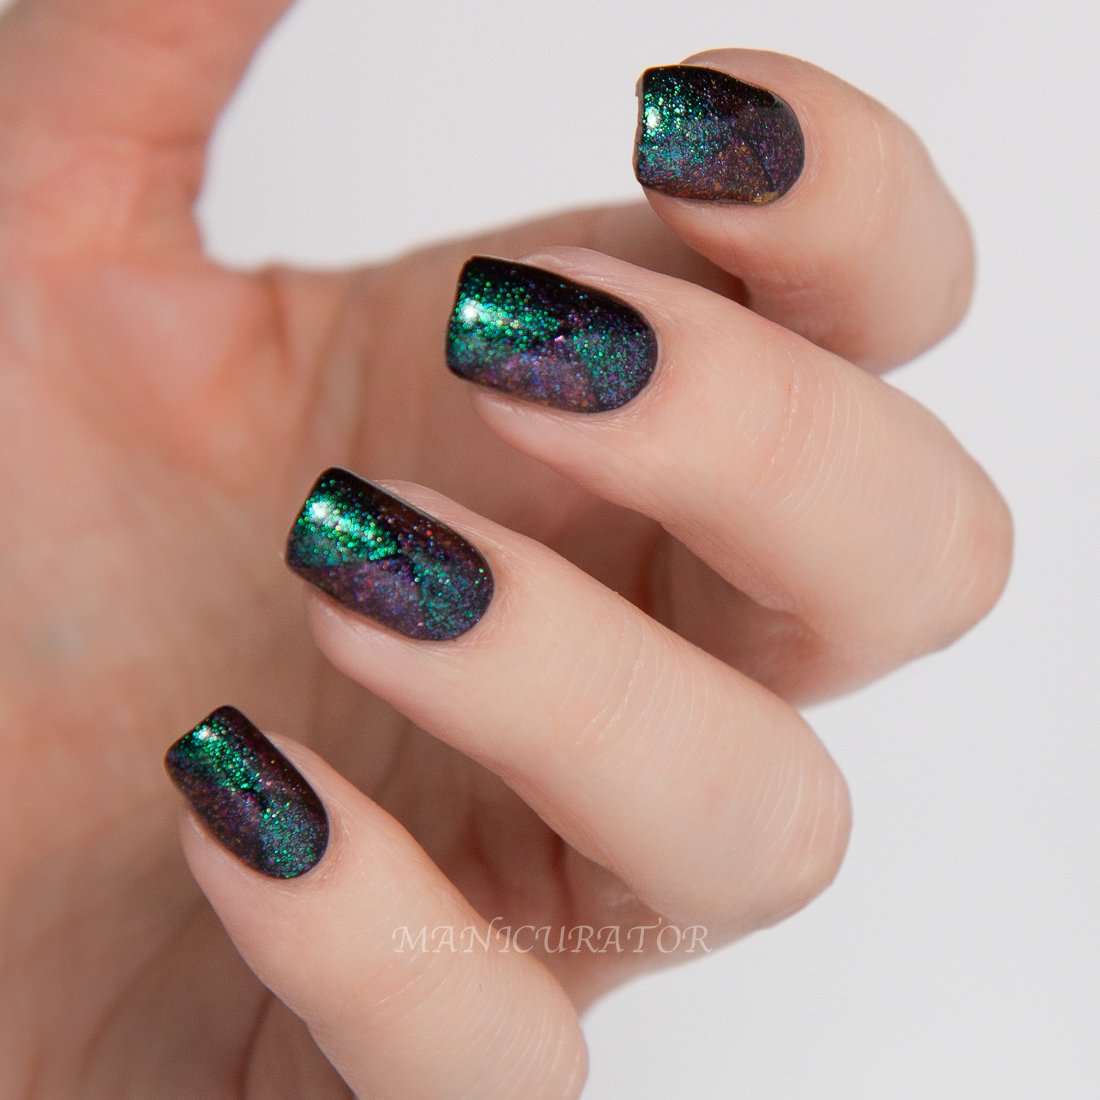 Glam-Polish-Harmony-Wind-Arcana-Dark-Fantasia-Flakies